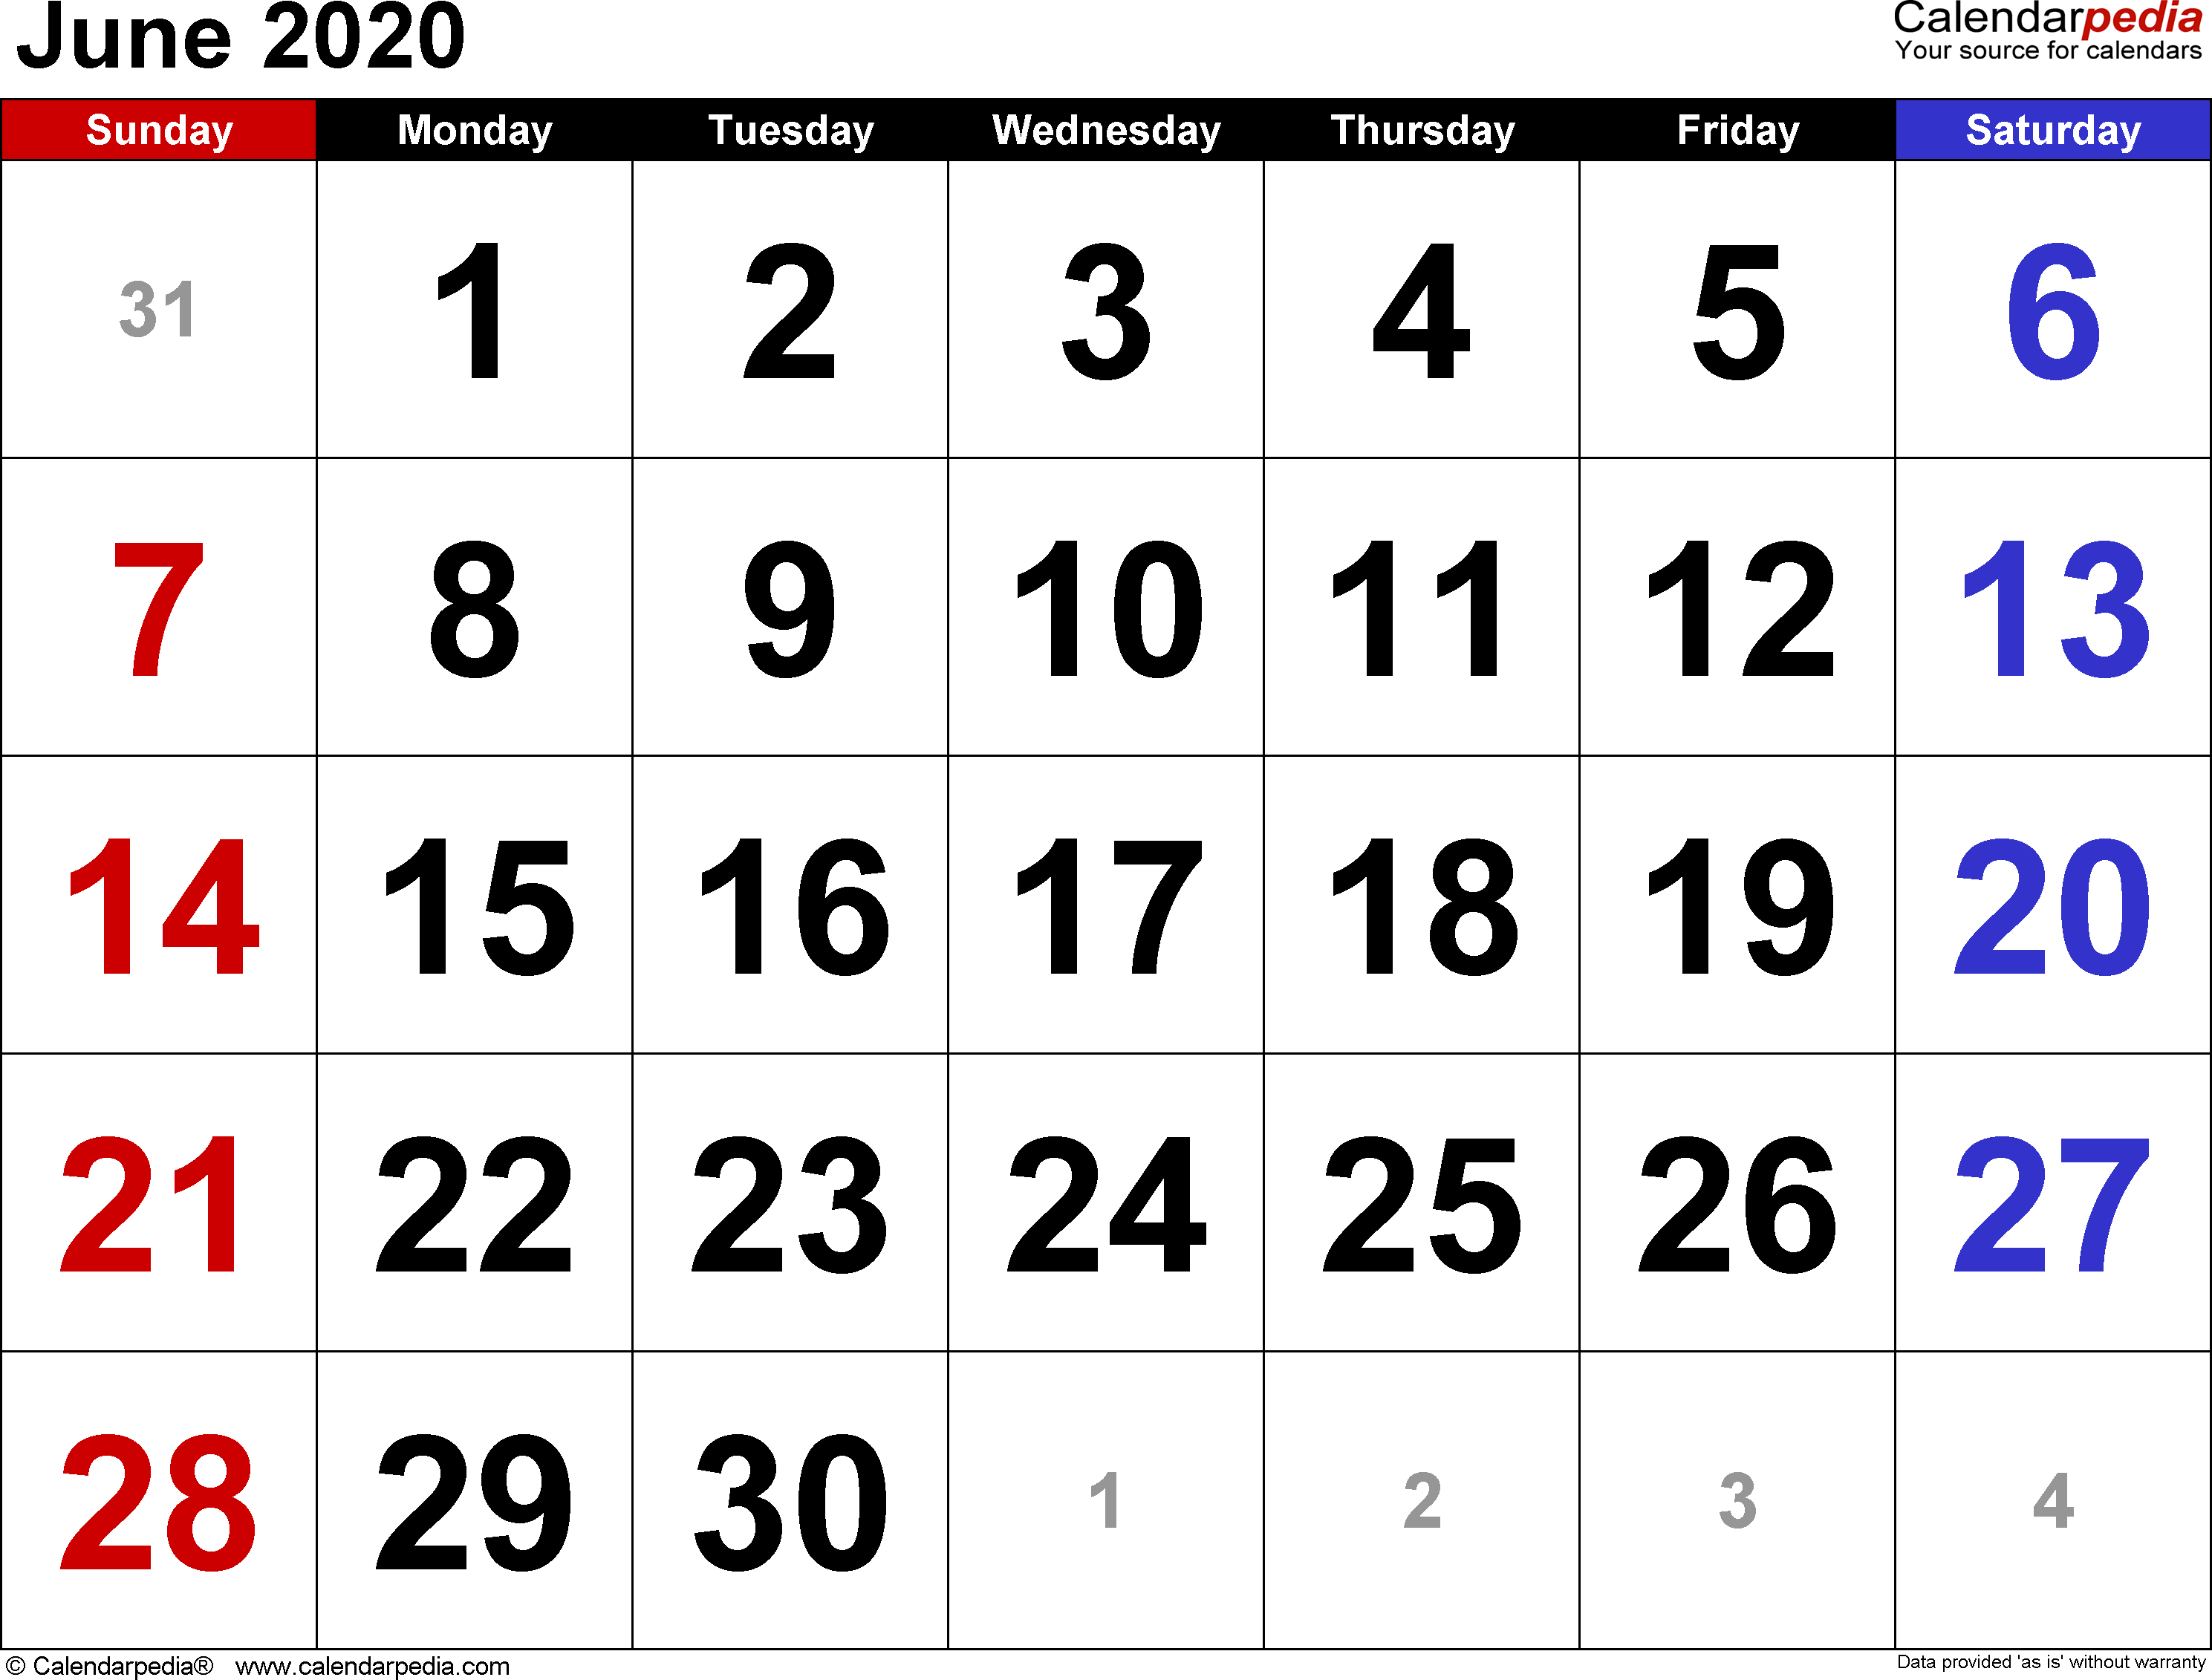 June 2020 Calendars For Word Excel Pdf